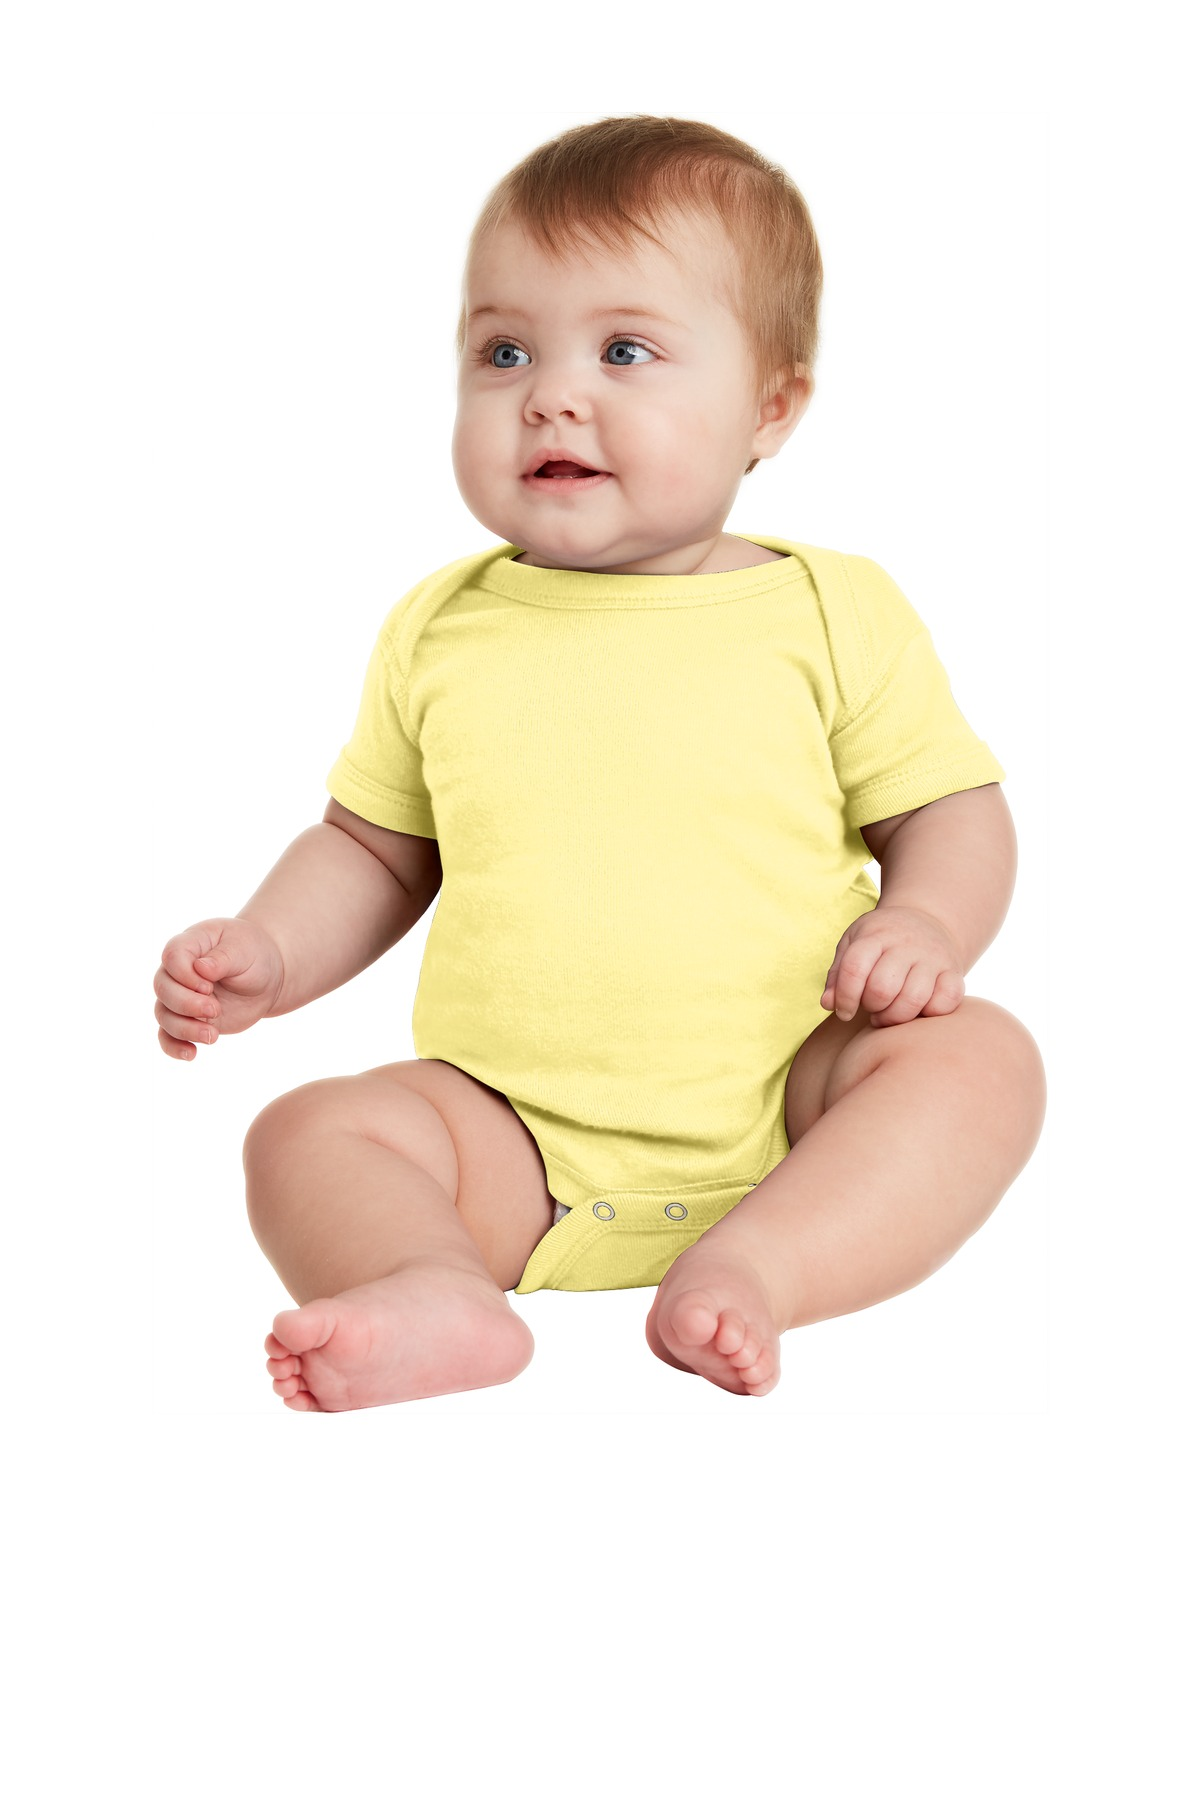 Rabbit Skins ™  Infant Short Sleeve Baby Rib Bodysuit. RS4400 - Banana